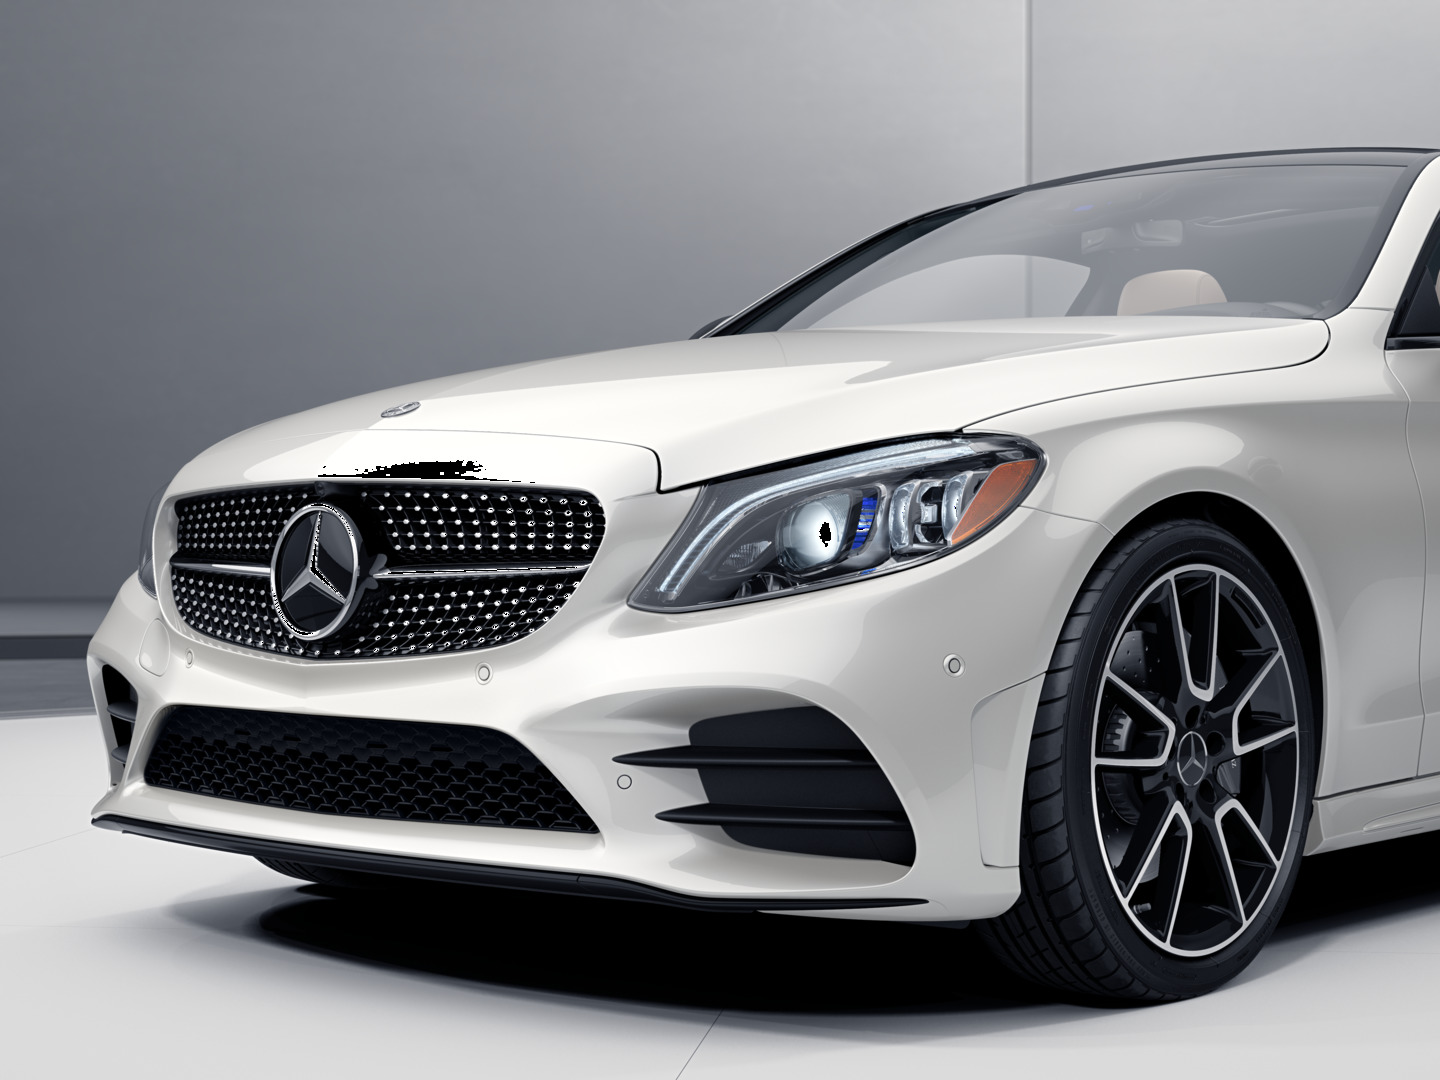 Mercedes Benz Lease >> Mercedes Benz Lease In Rochester Hills Mi Mercedes Benz Of Rochester